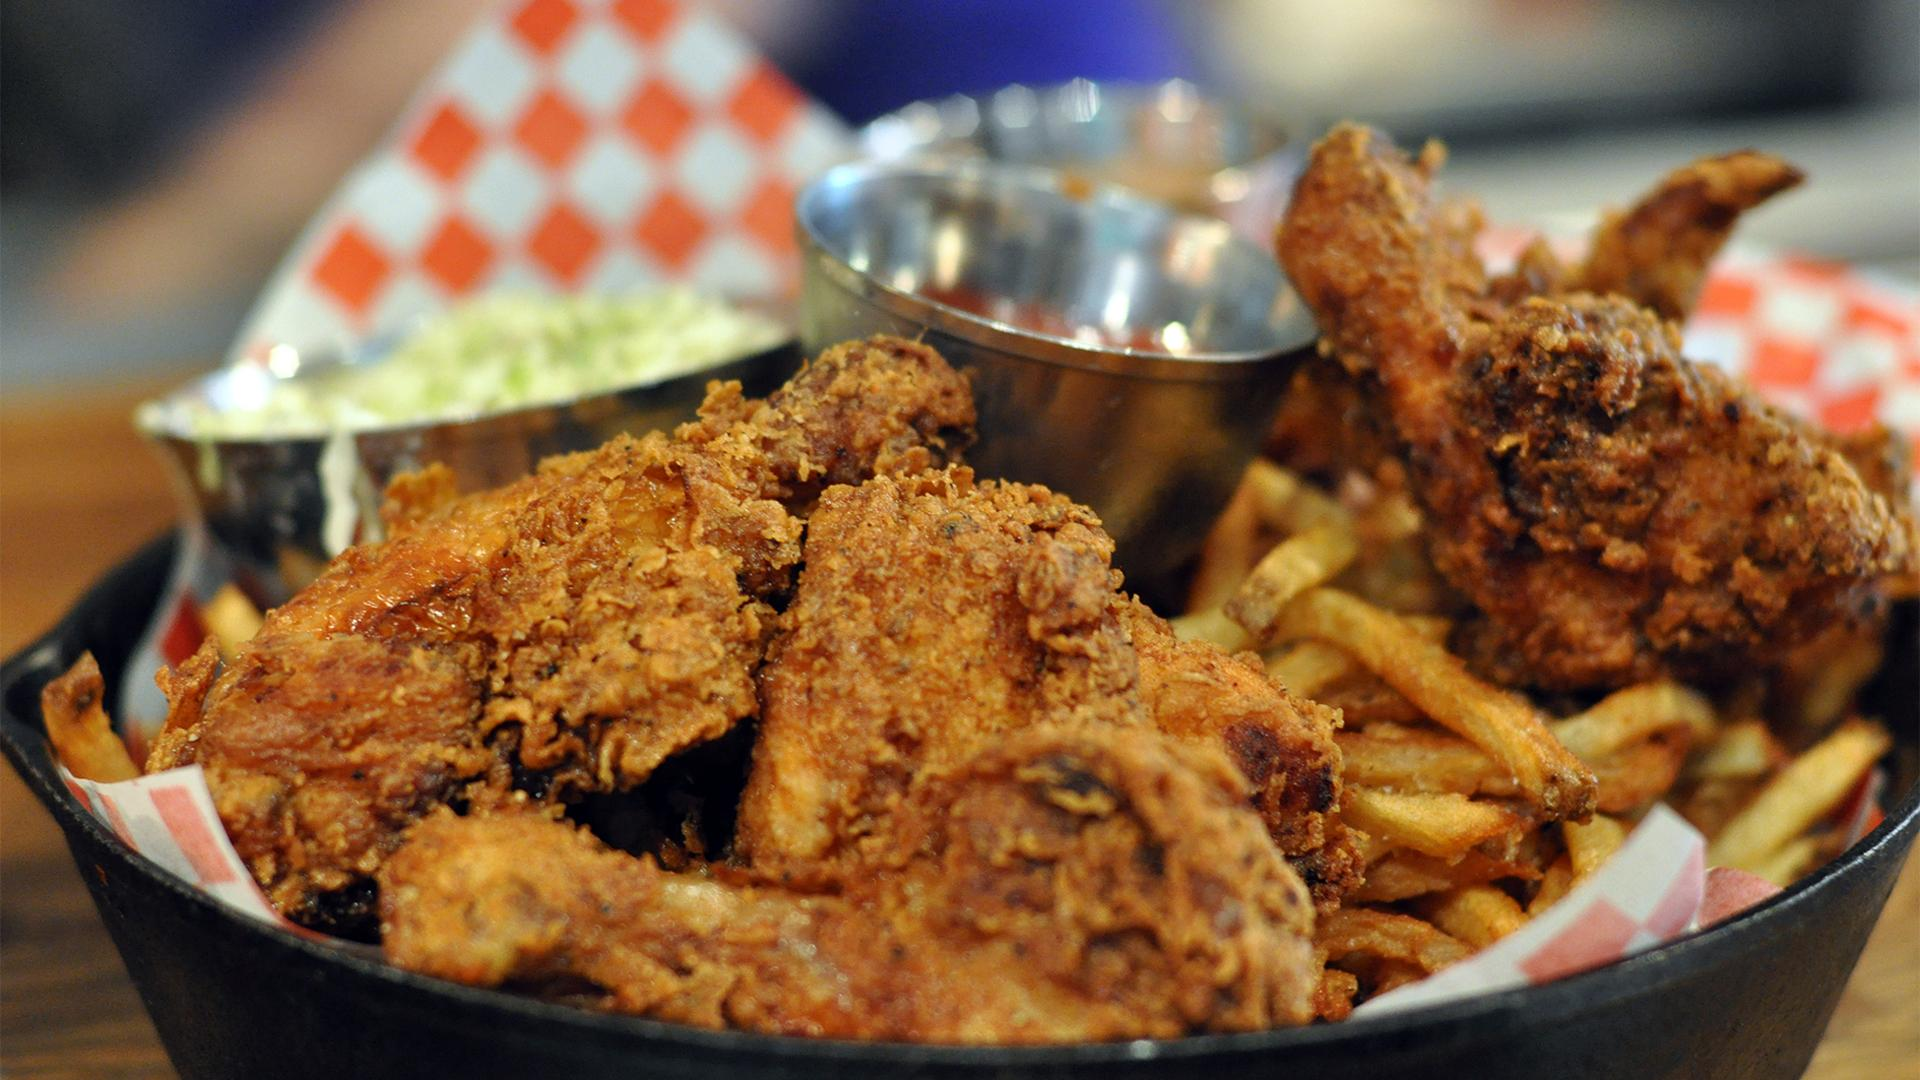 Best Southern soul food restaurants Toronto | fried chicken at the Stockyards